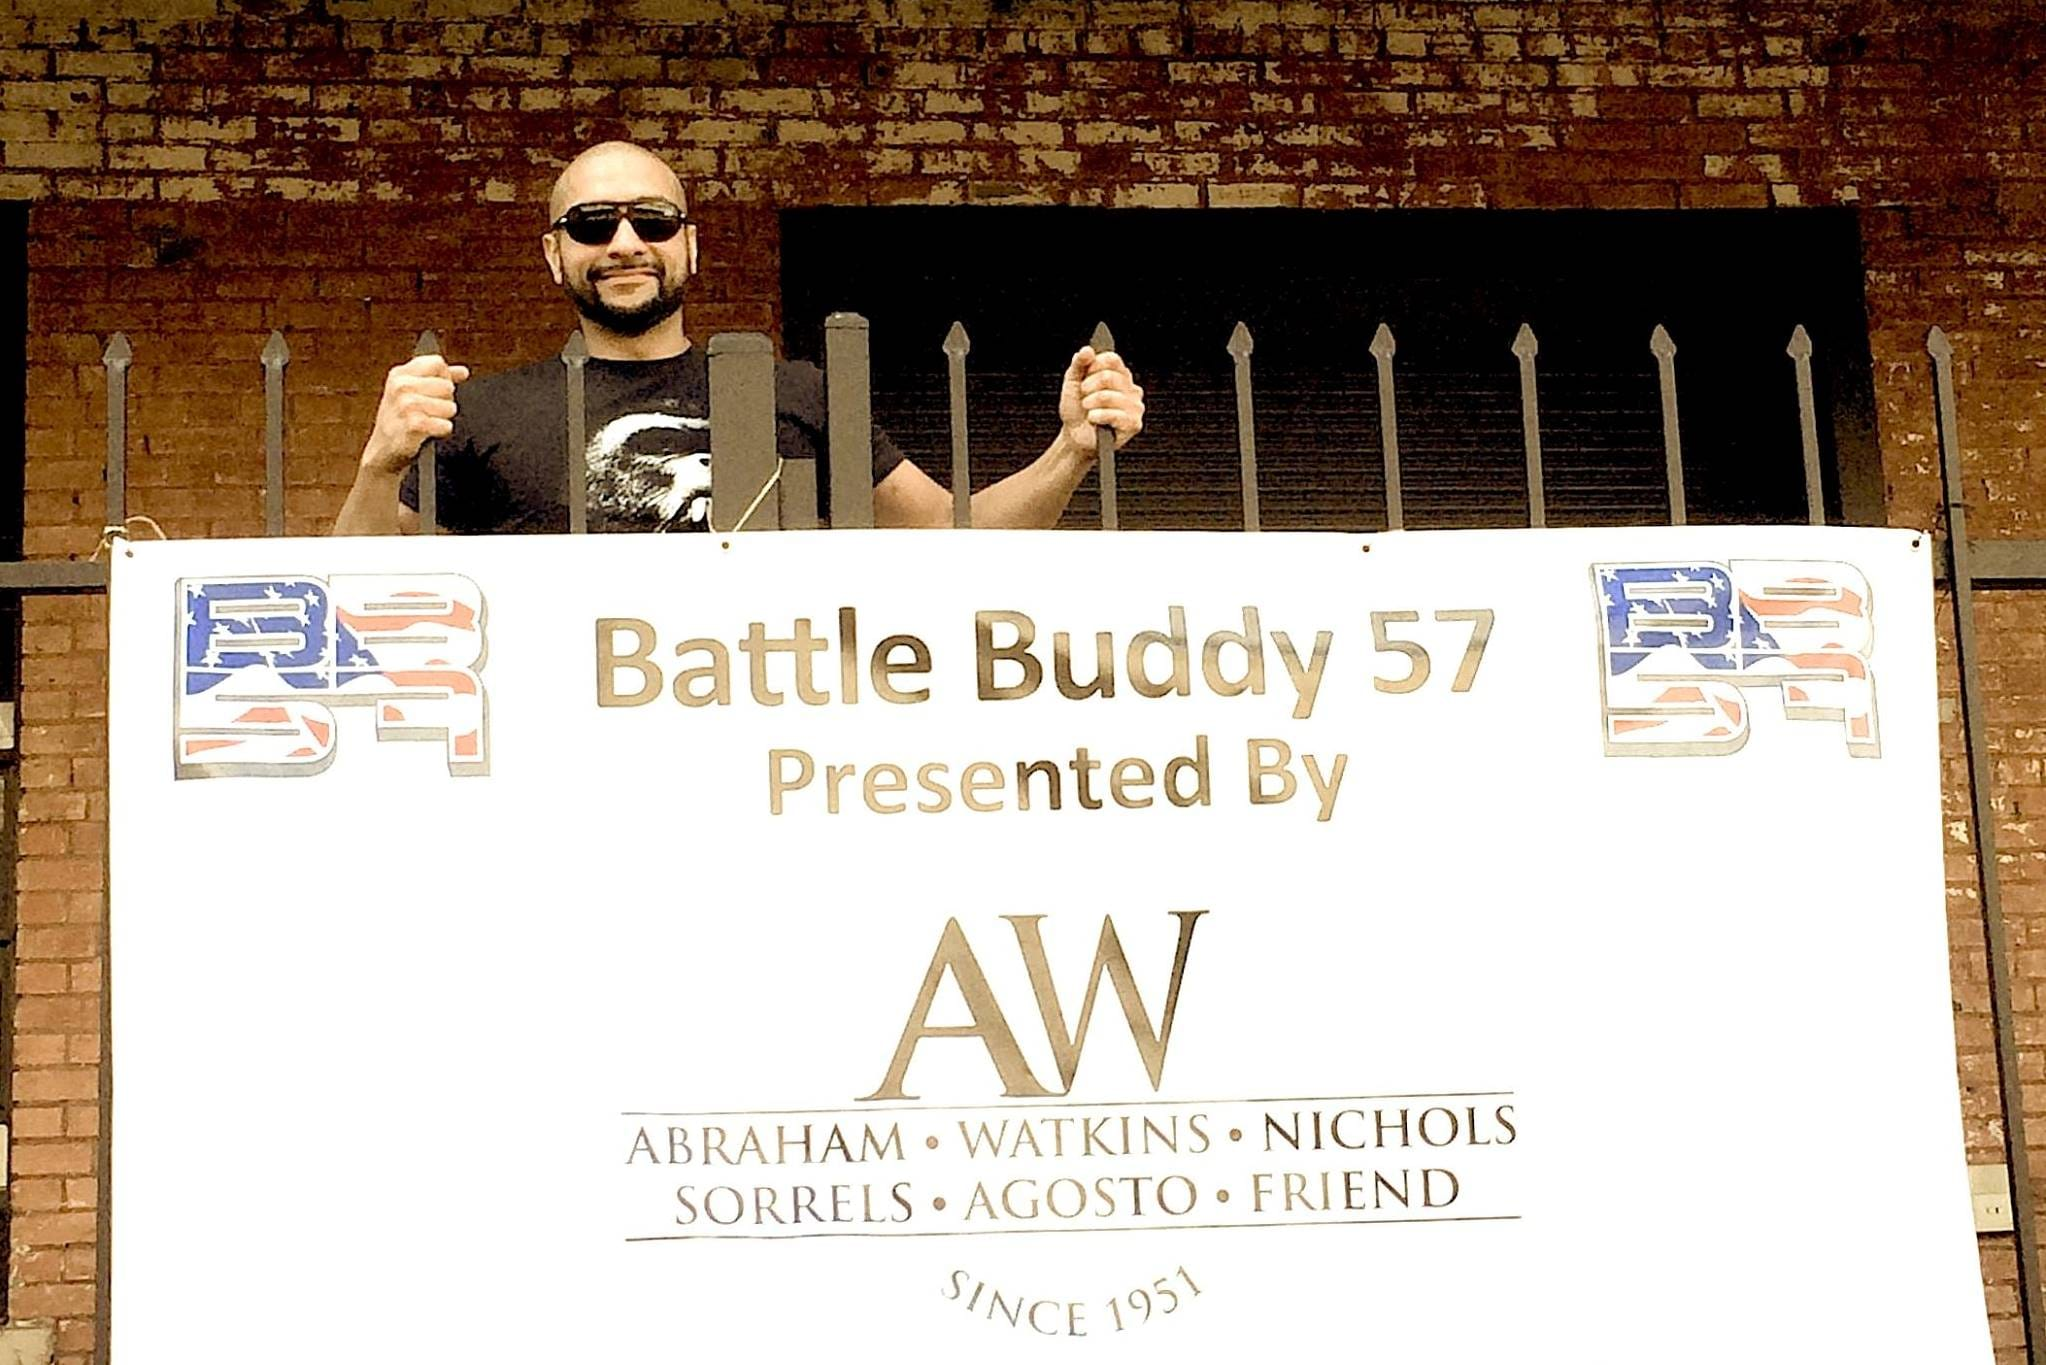 Partner Mo Aziz competed in Battle Buddies 57 for the second consecutive year